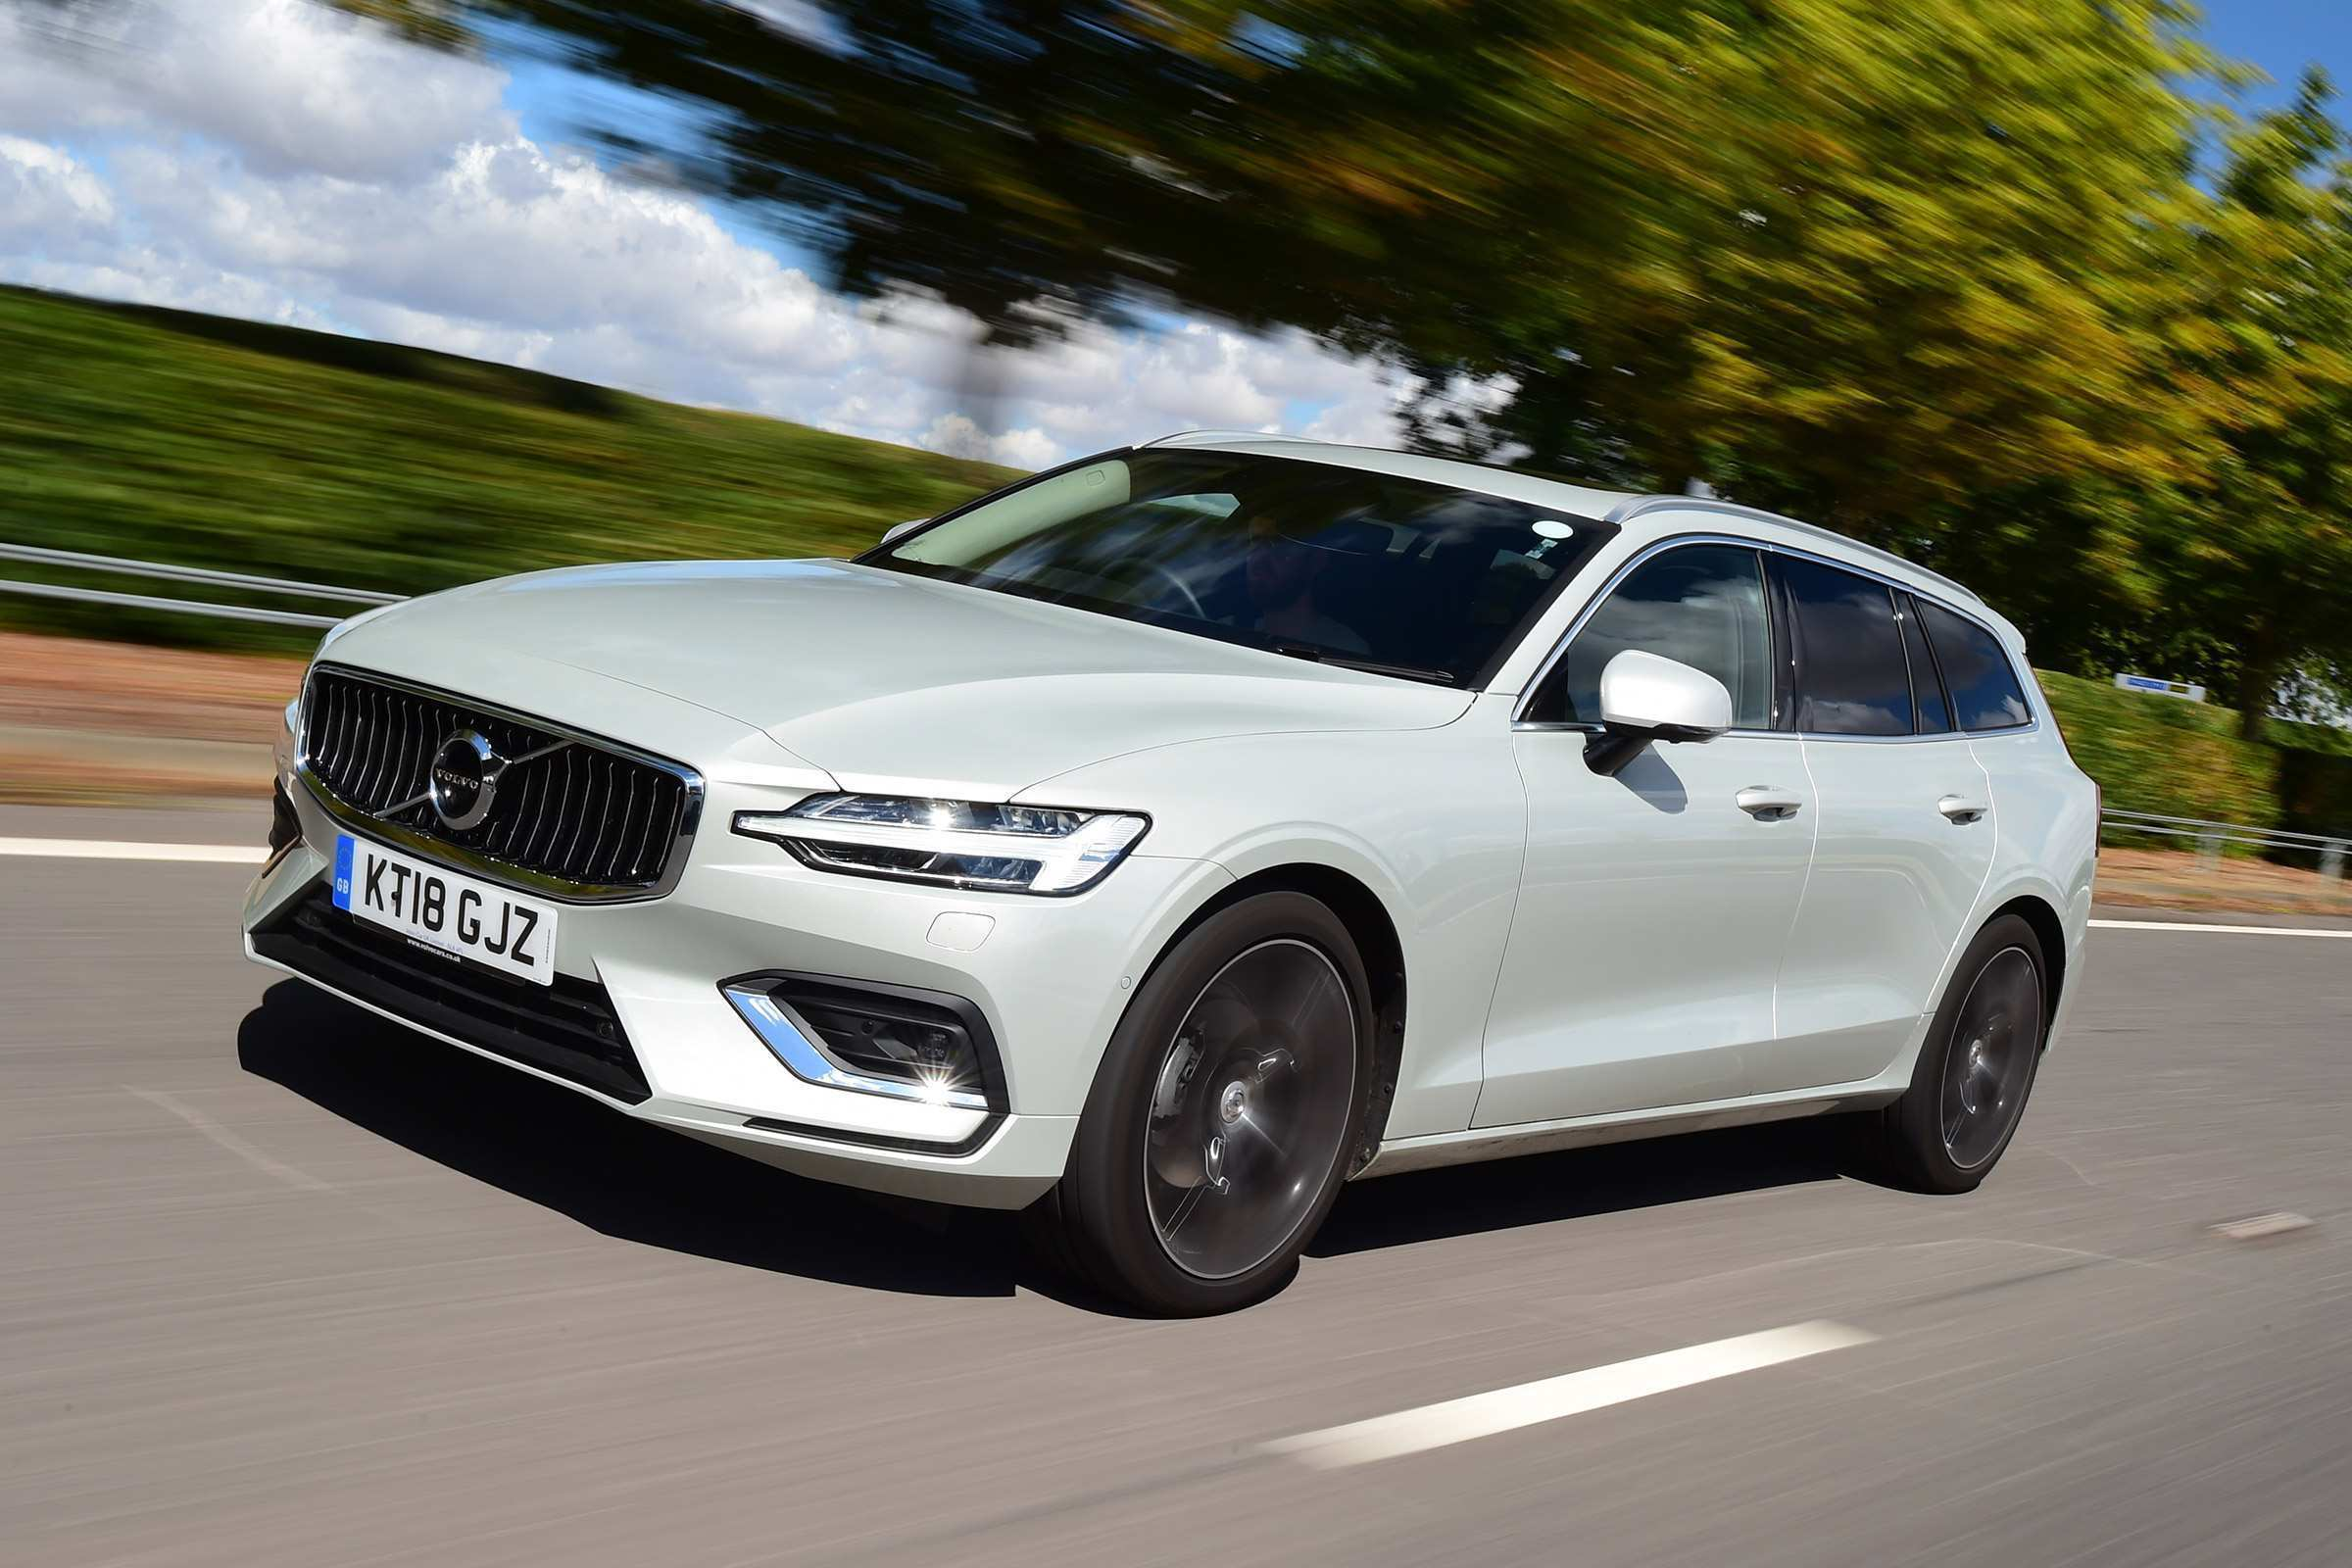 46 Best Review Volvo 2019 V60 Review Interior Exterior And Review Pricing for Volvo 2019 V60 Review Interior Exterior And Review